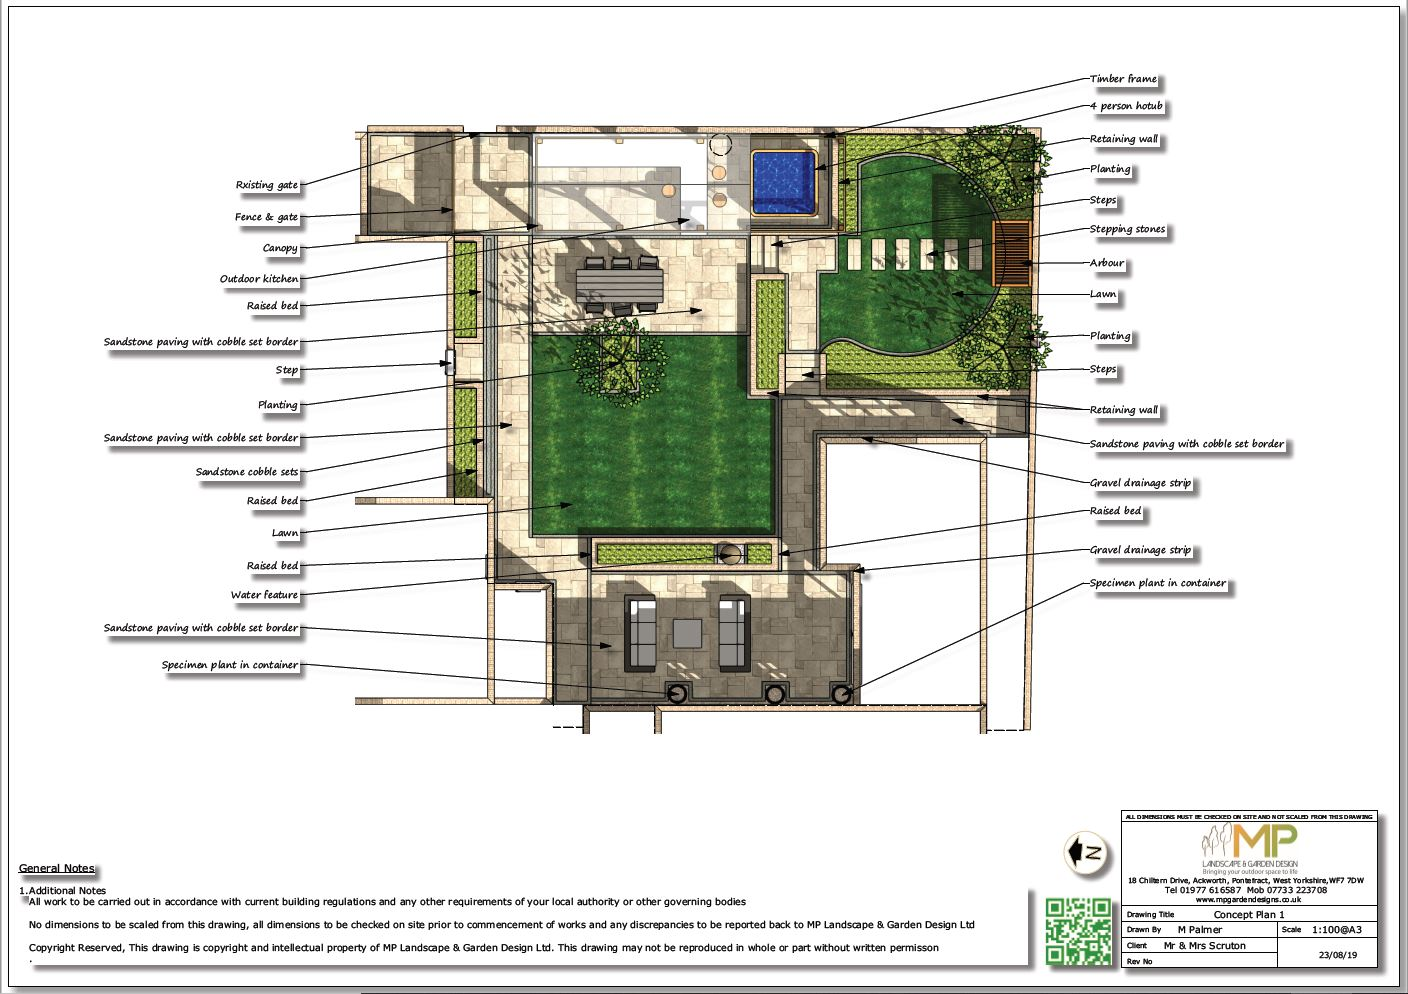 Colour concept plan-1 for a rear garden in Pollington